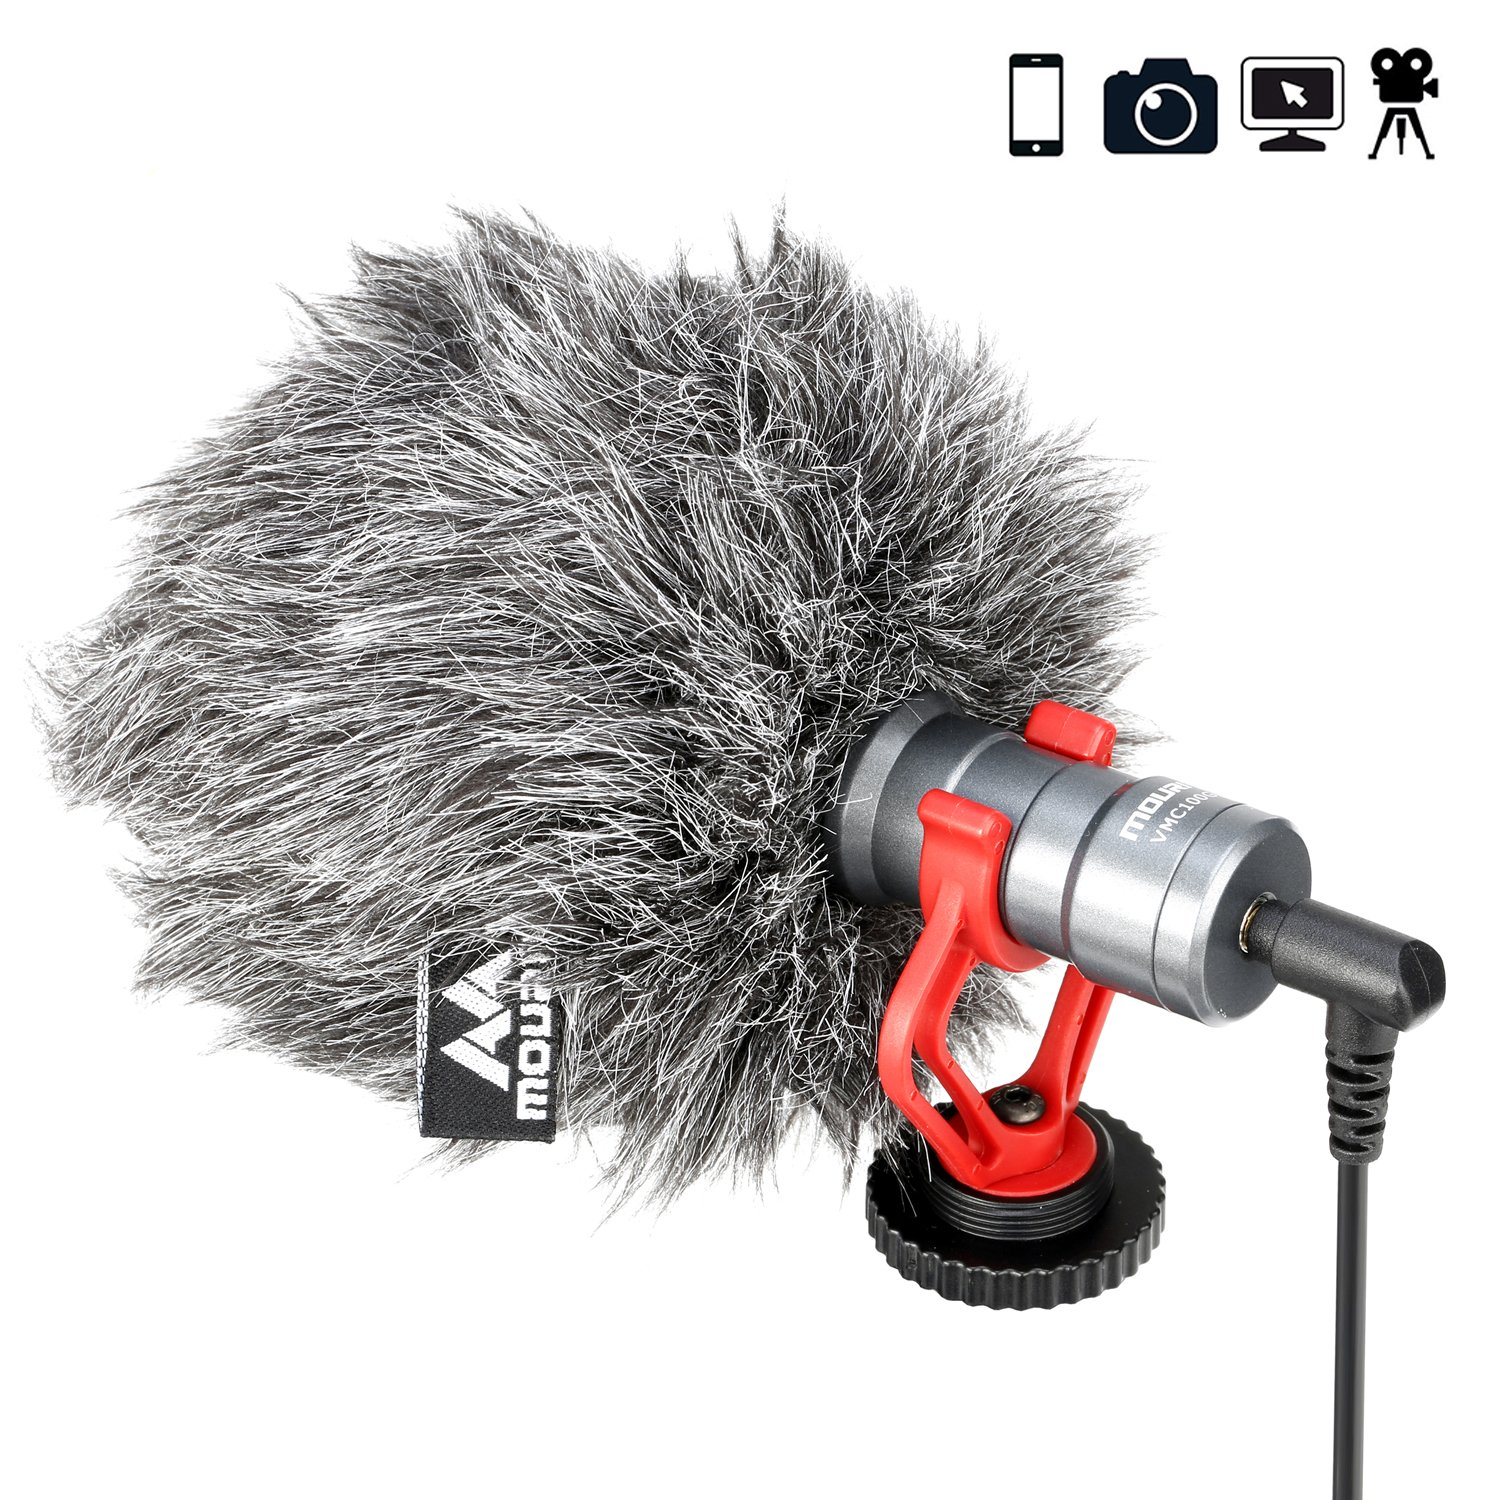 Mouriv Video Microphone,Professional Shotgun Mic for iPhone Huawei Smartphone DJI Osmo Mobile 2,Compatible with ZHIYUN Smooth Q Smooth 4 Feiyu Vimble Canon Sony DSLR Cameras